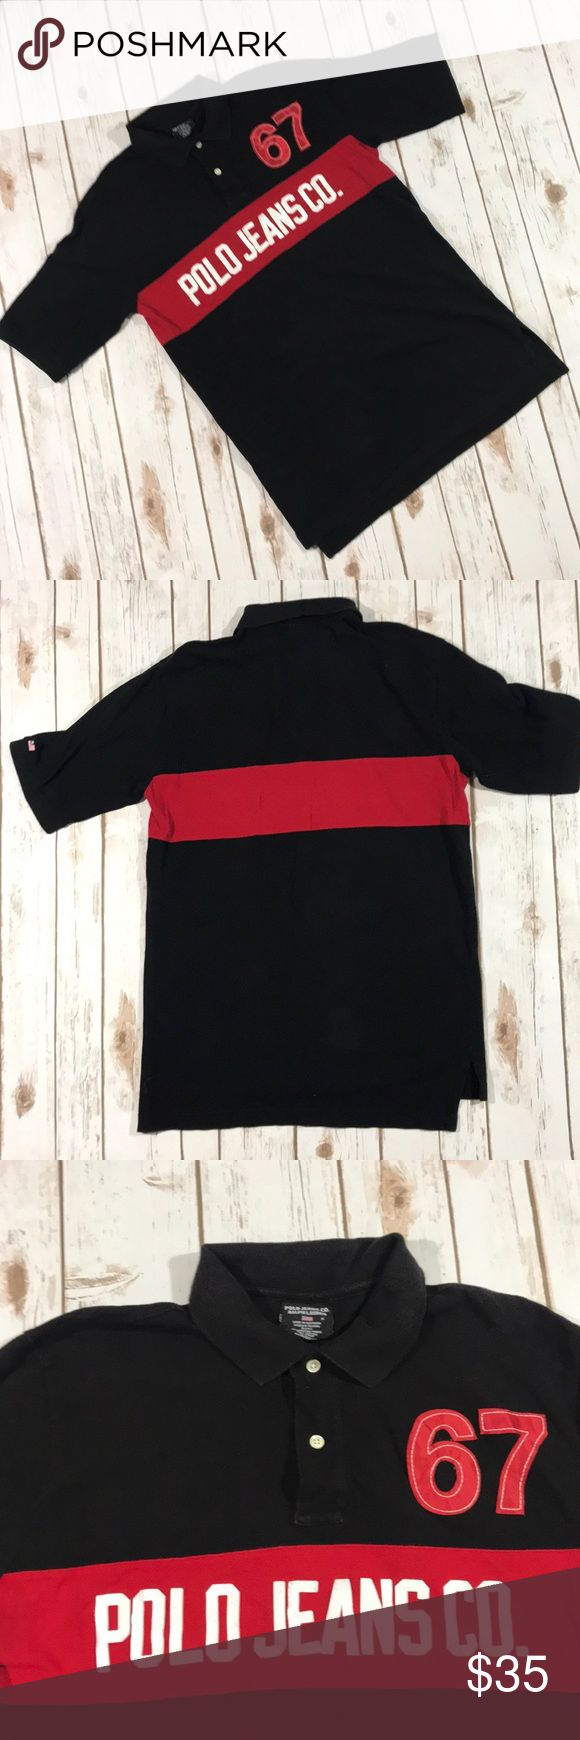 "POLO JEANS CO. Men's vintage polo black shirt S Men's Small. No rips or stains. Good condition.  Pit to pit 20"" Front Length 281/2""  Back Length 30 100 Cotton. Polo Jeans Co. Shirts Polos"